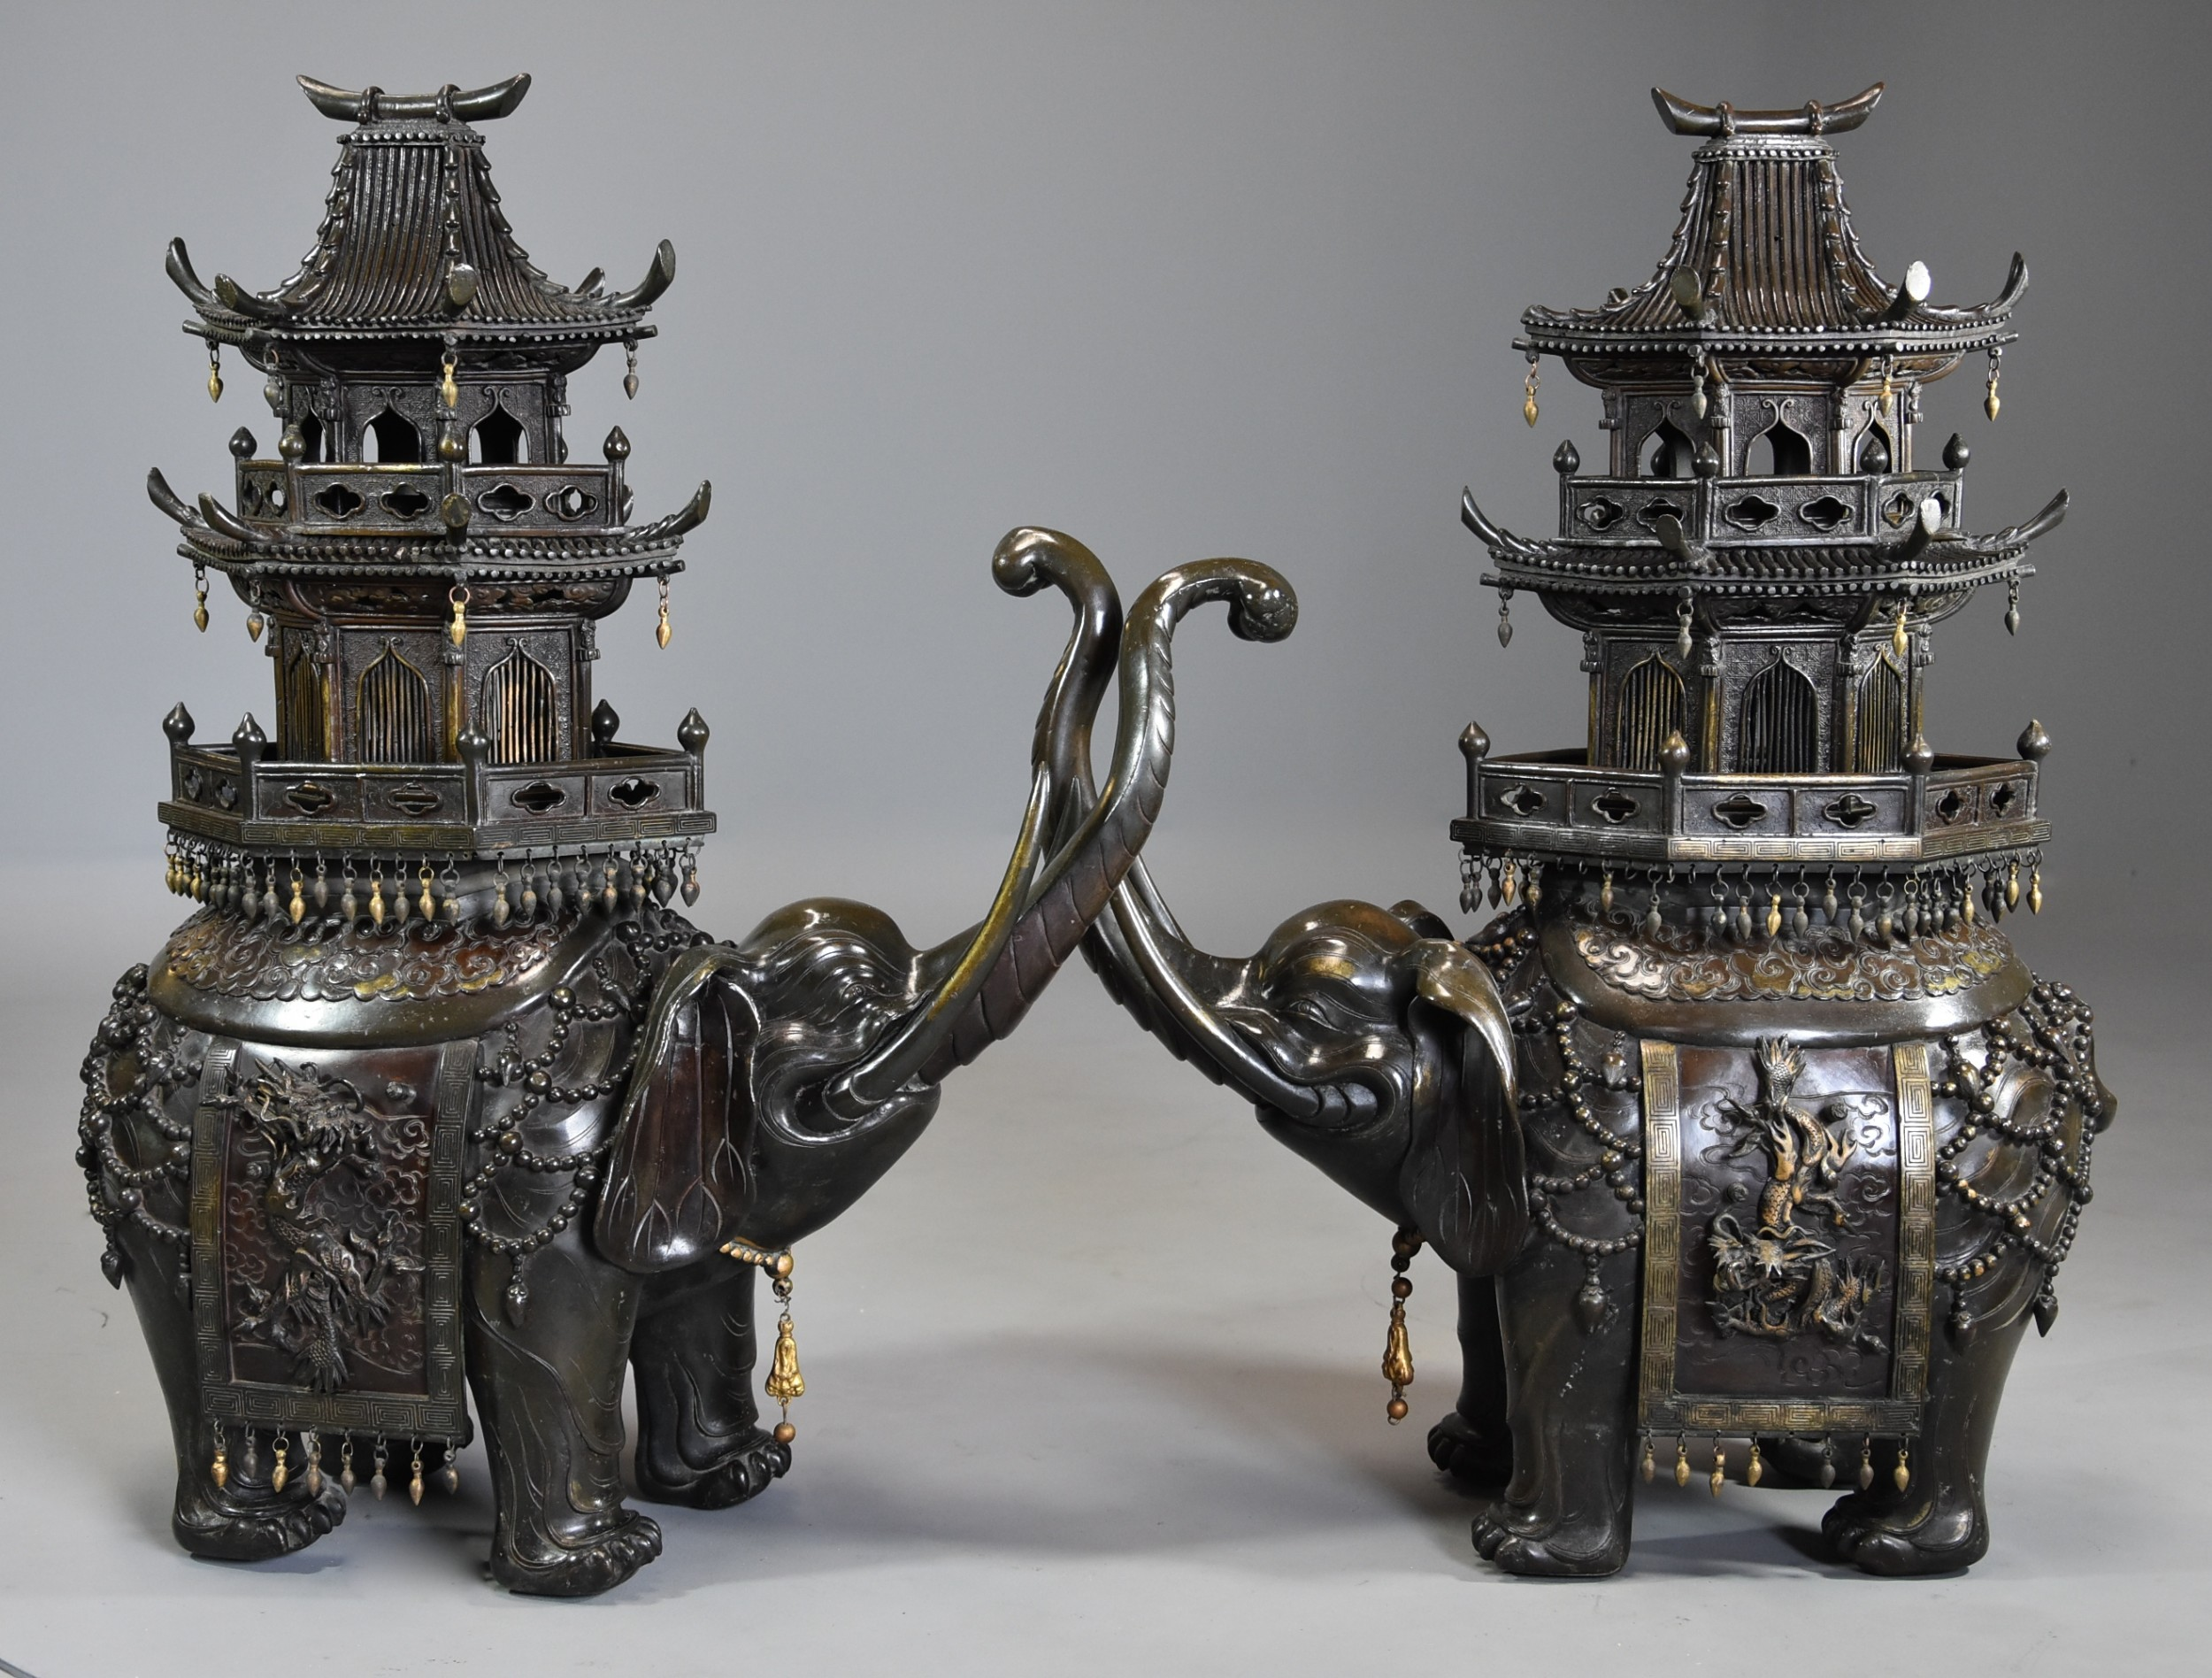 pair of large fine quality late 19thc japanese meiji bronze elephant incense burners or koro